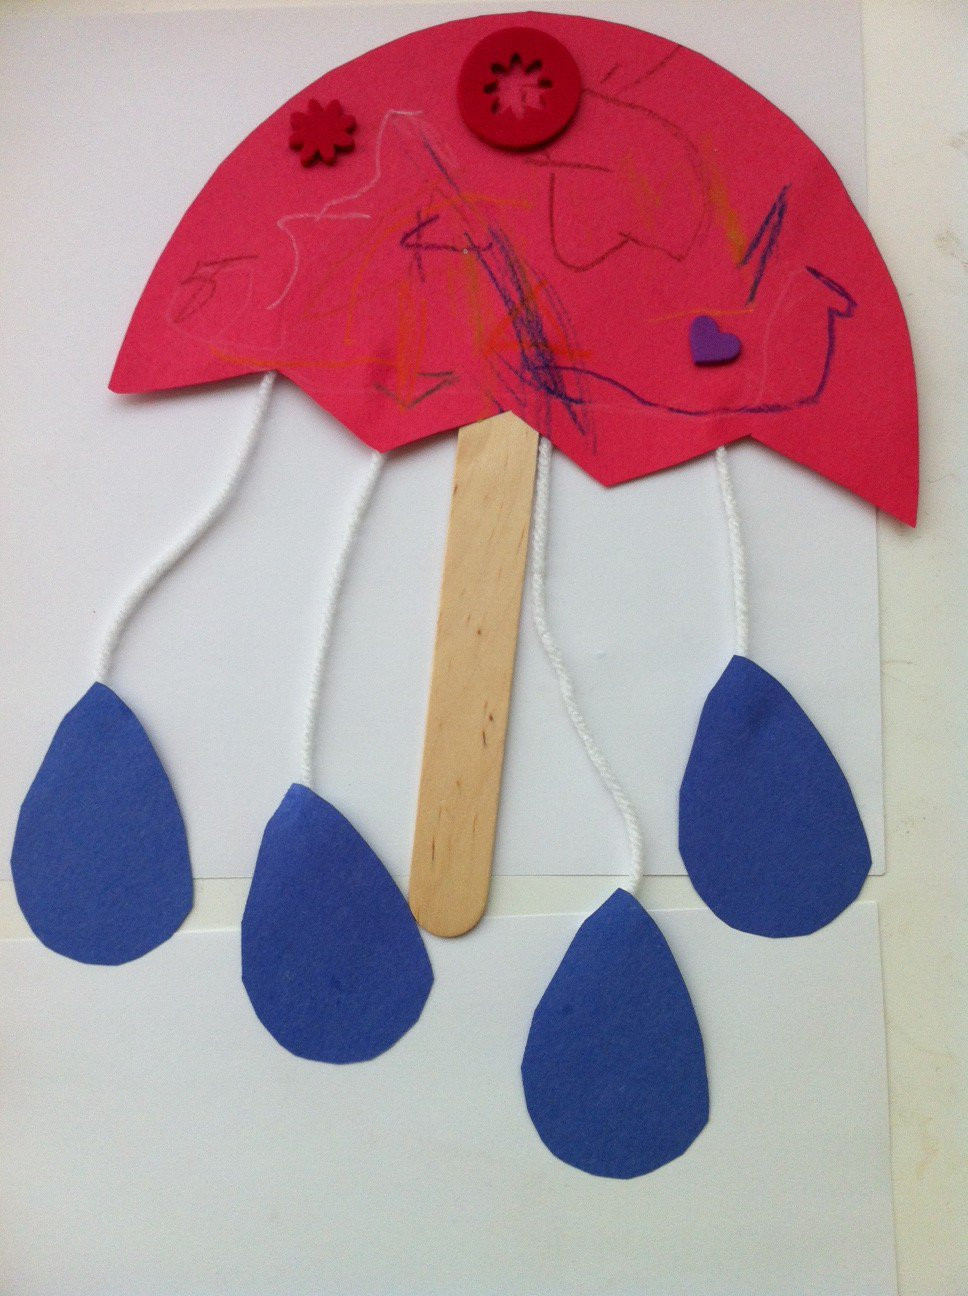 Best ideas about Art Project Ideas For Preschoolers . Save or Pin Letter U Crafts Preschool and Kindergarten Now.